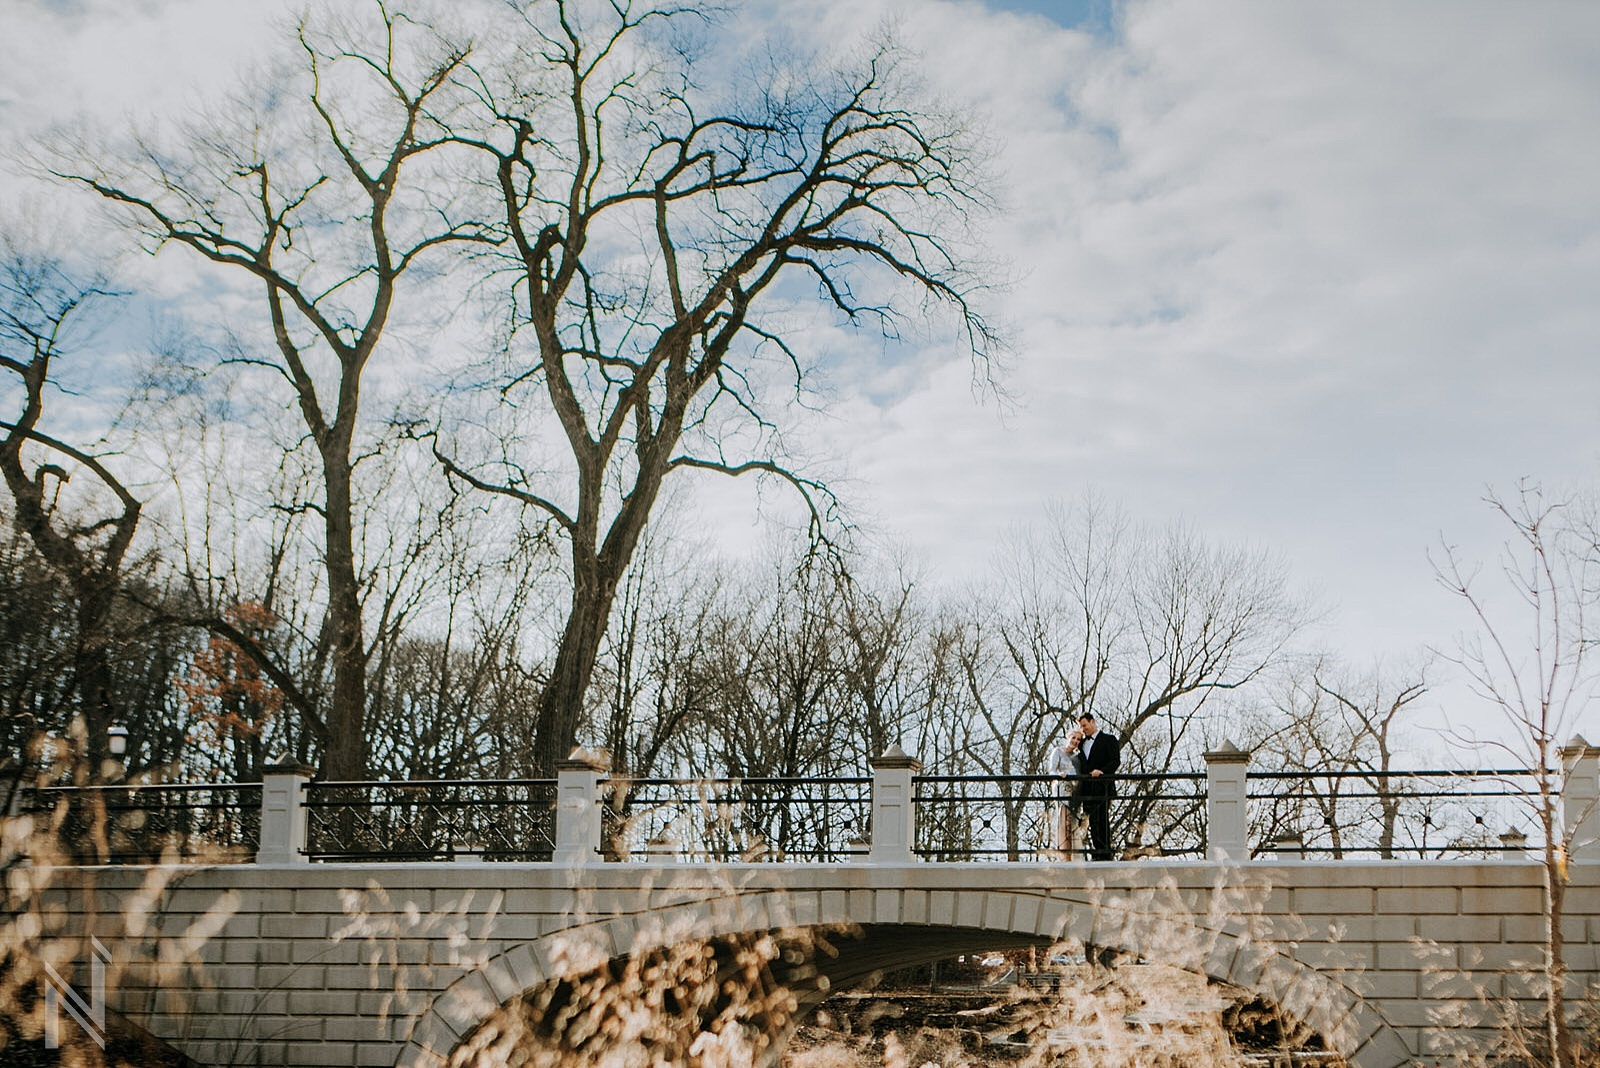 Ali and Marty Formal Maternity Photography Session with their Pitbull Dog at The Muny in Forest Park by St. Louis Family Photographers North Arrow Creative